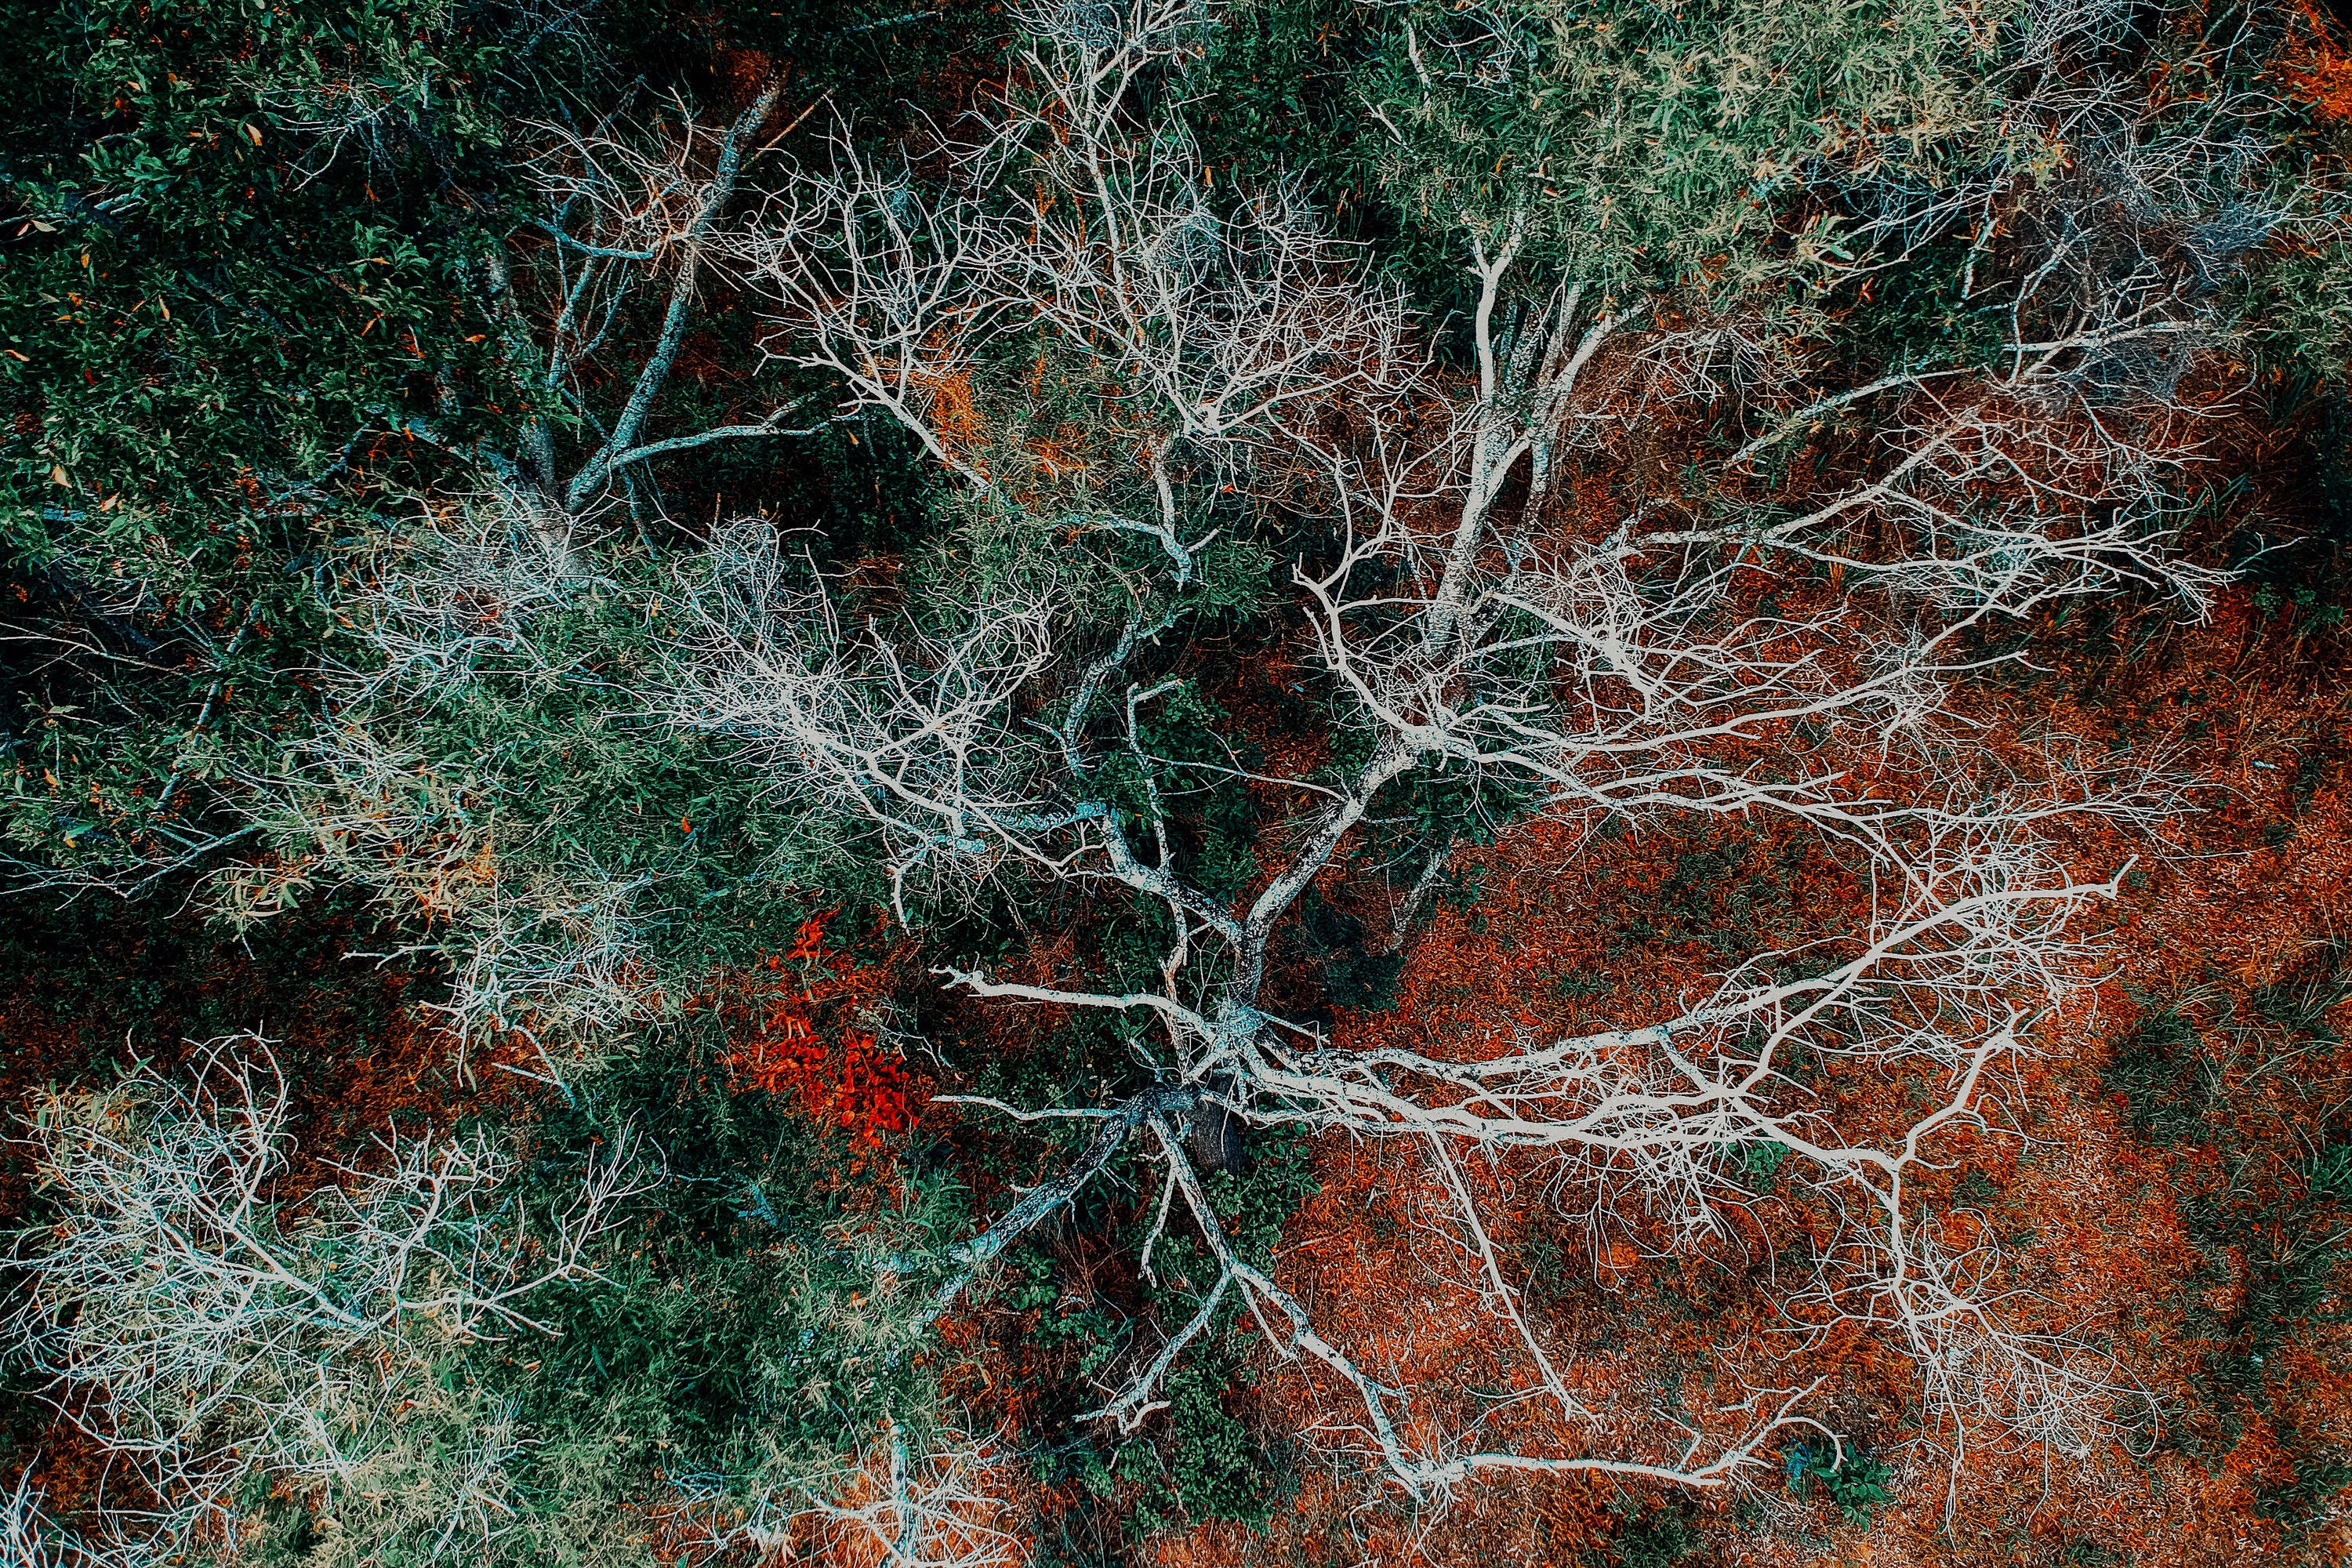 Aerial Photography of Green Leafed Tree